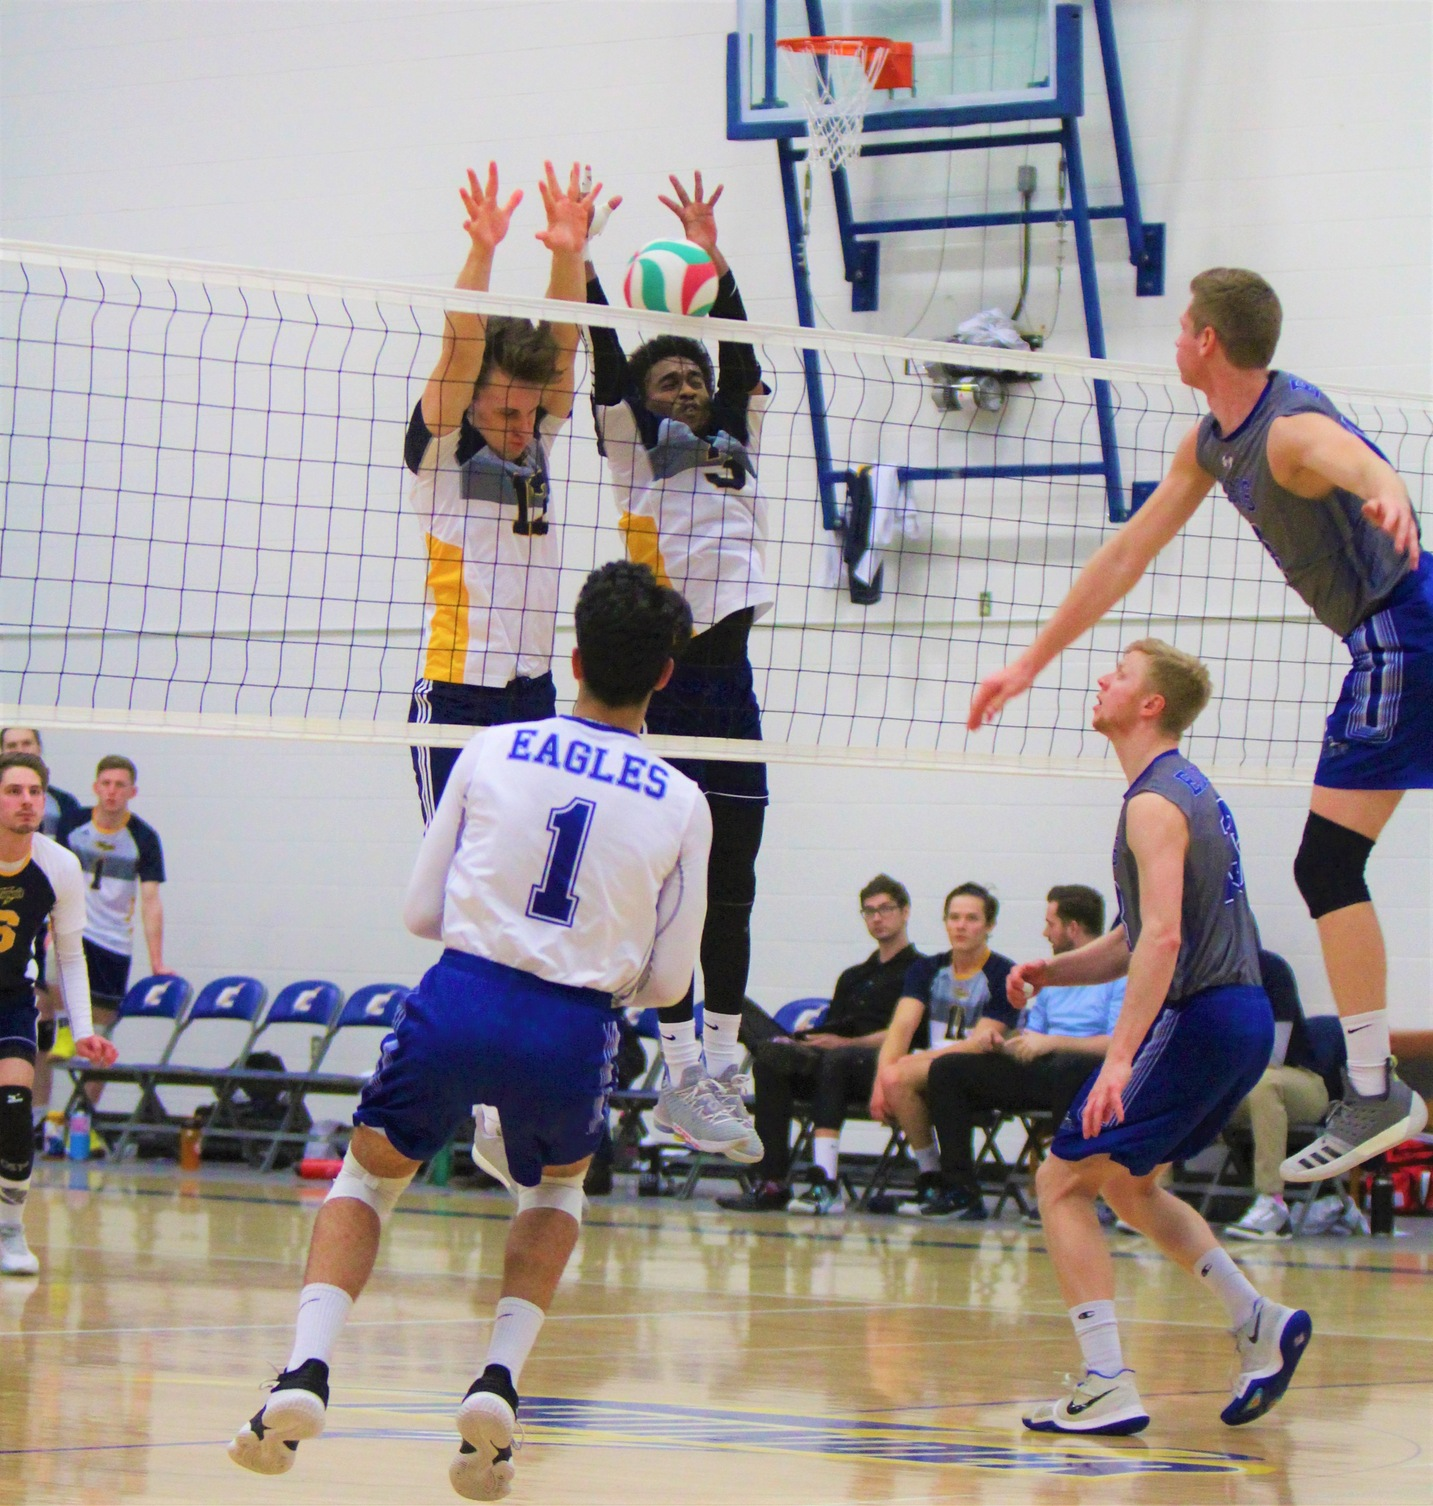 Thunder Falls In Four Sets To The Eagles